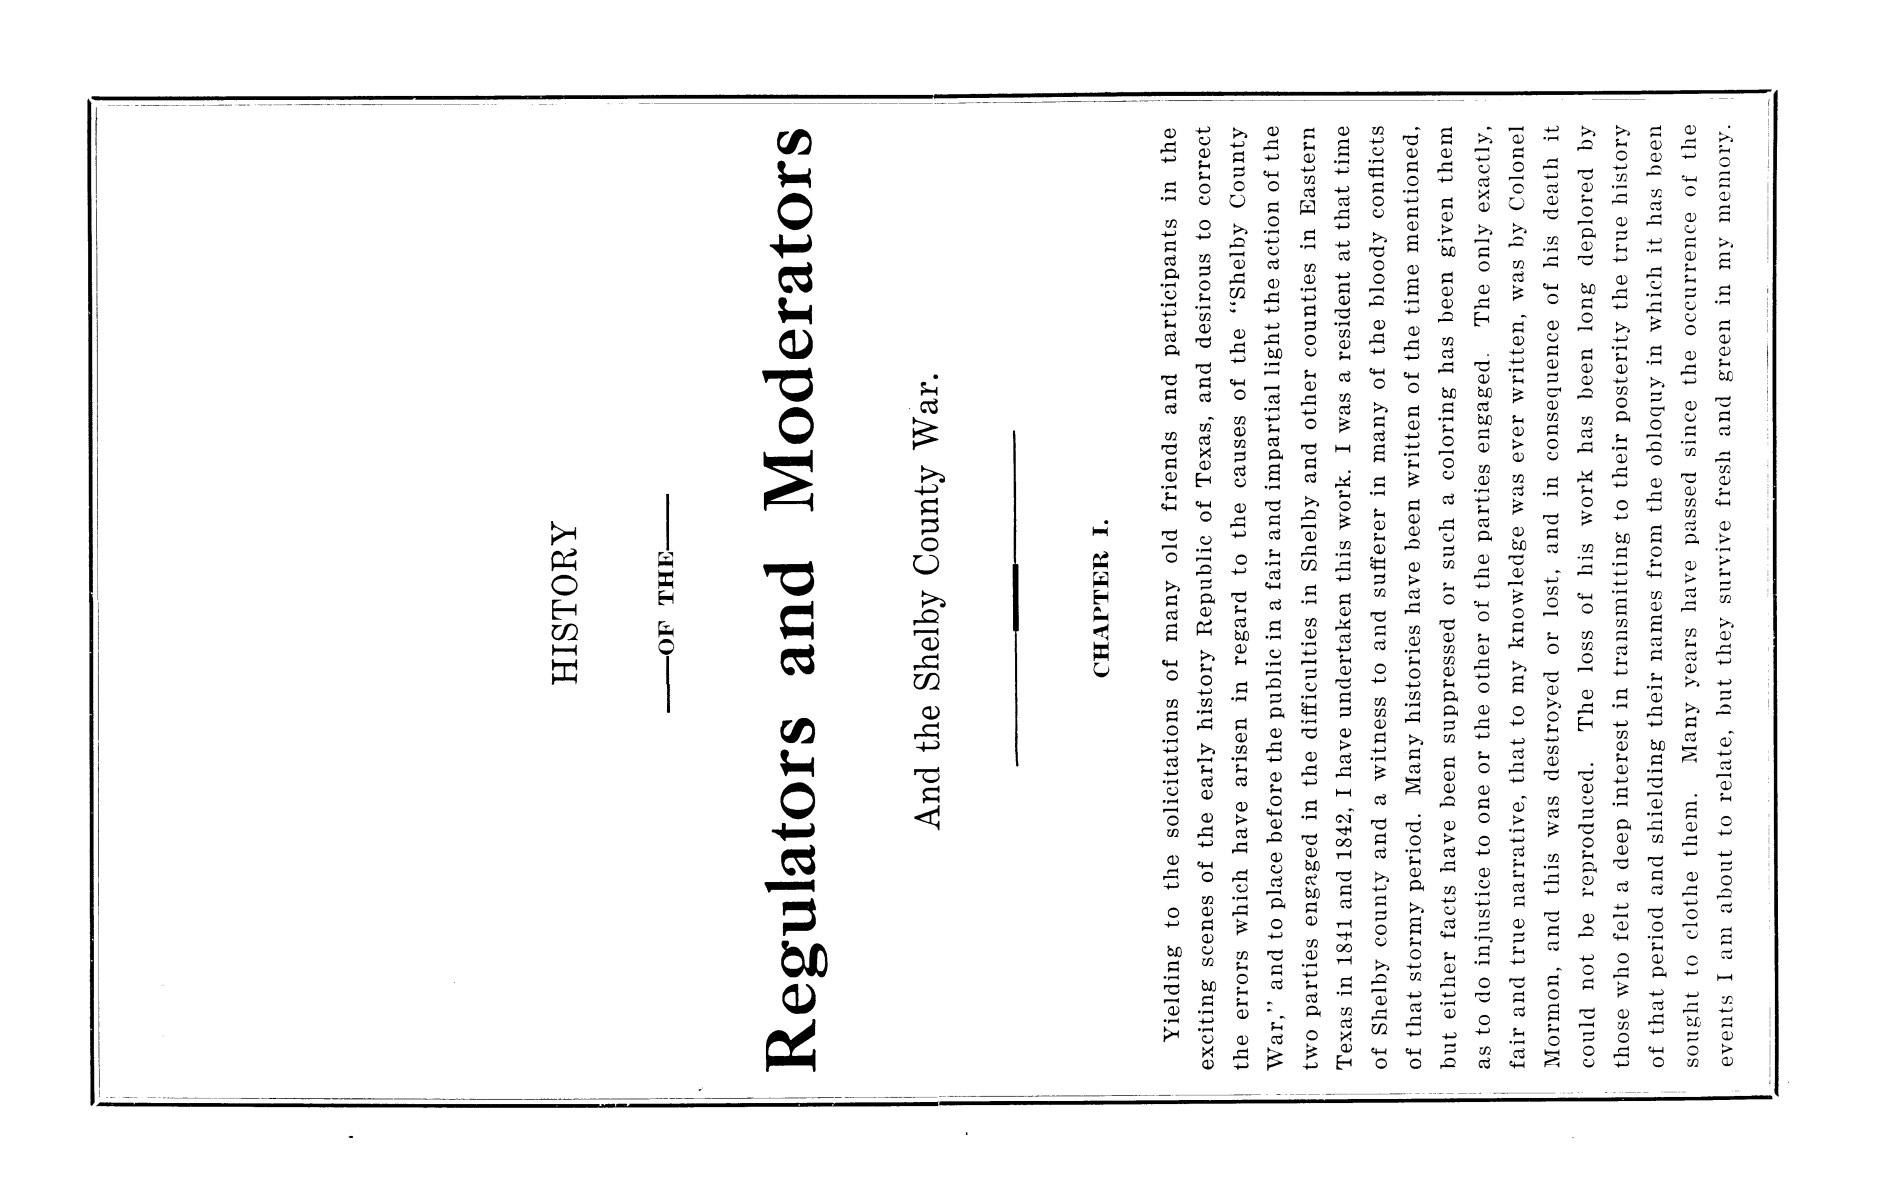 History of the regulators and moderators and the Shelby County war in 1841 and 1842, in the republic of Texas, with facts and incidents in the early history of the republic and state, from 1837 to the annexation, together with incidents of frontier life and Indian troubles, and the war on the reserve in Young County in 1857                                                                                                      [Sequence #]: 7 of 42